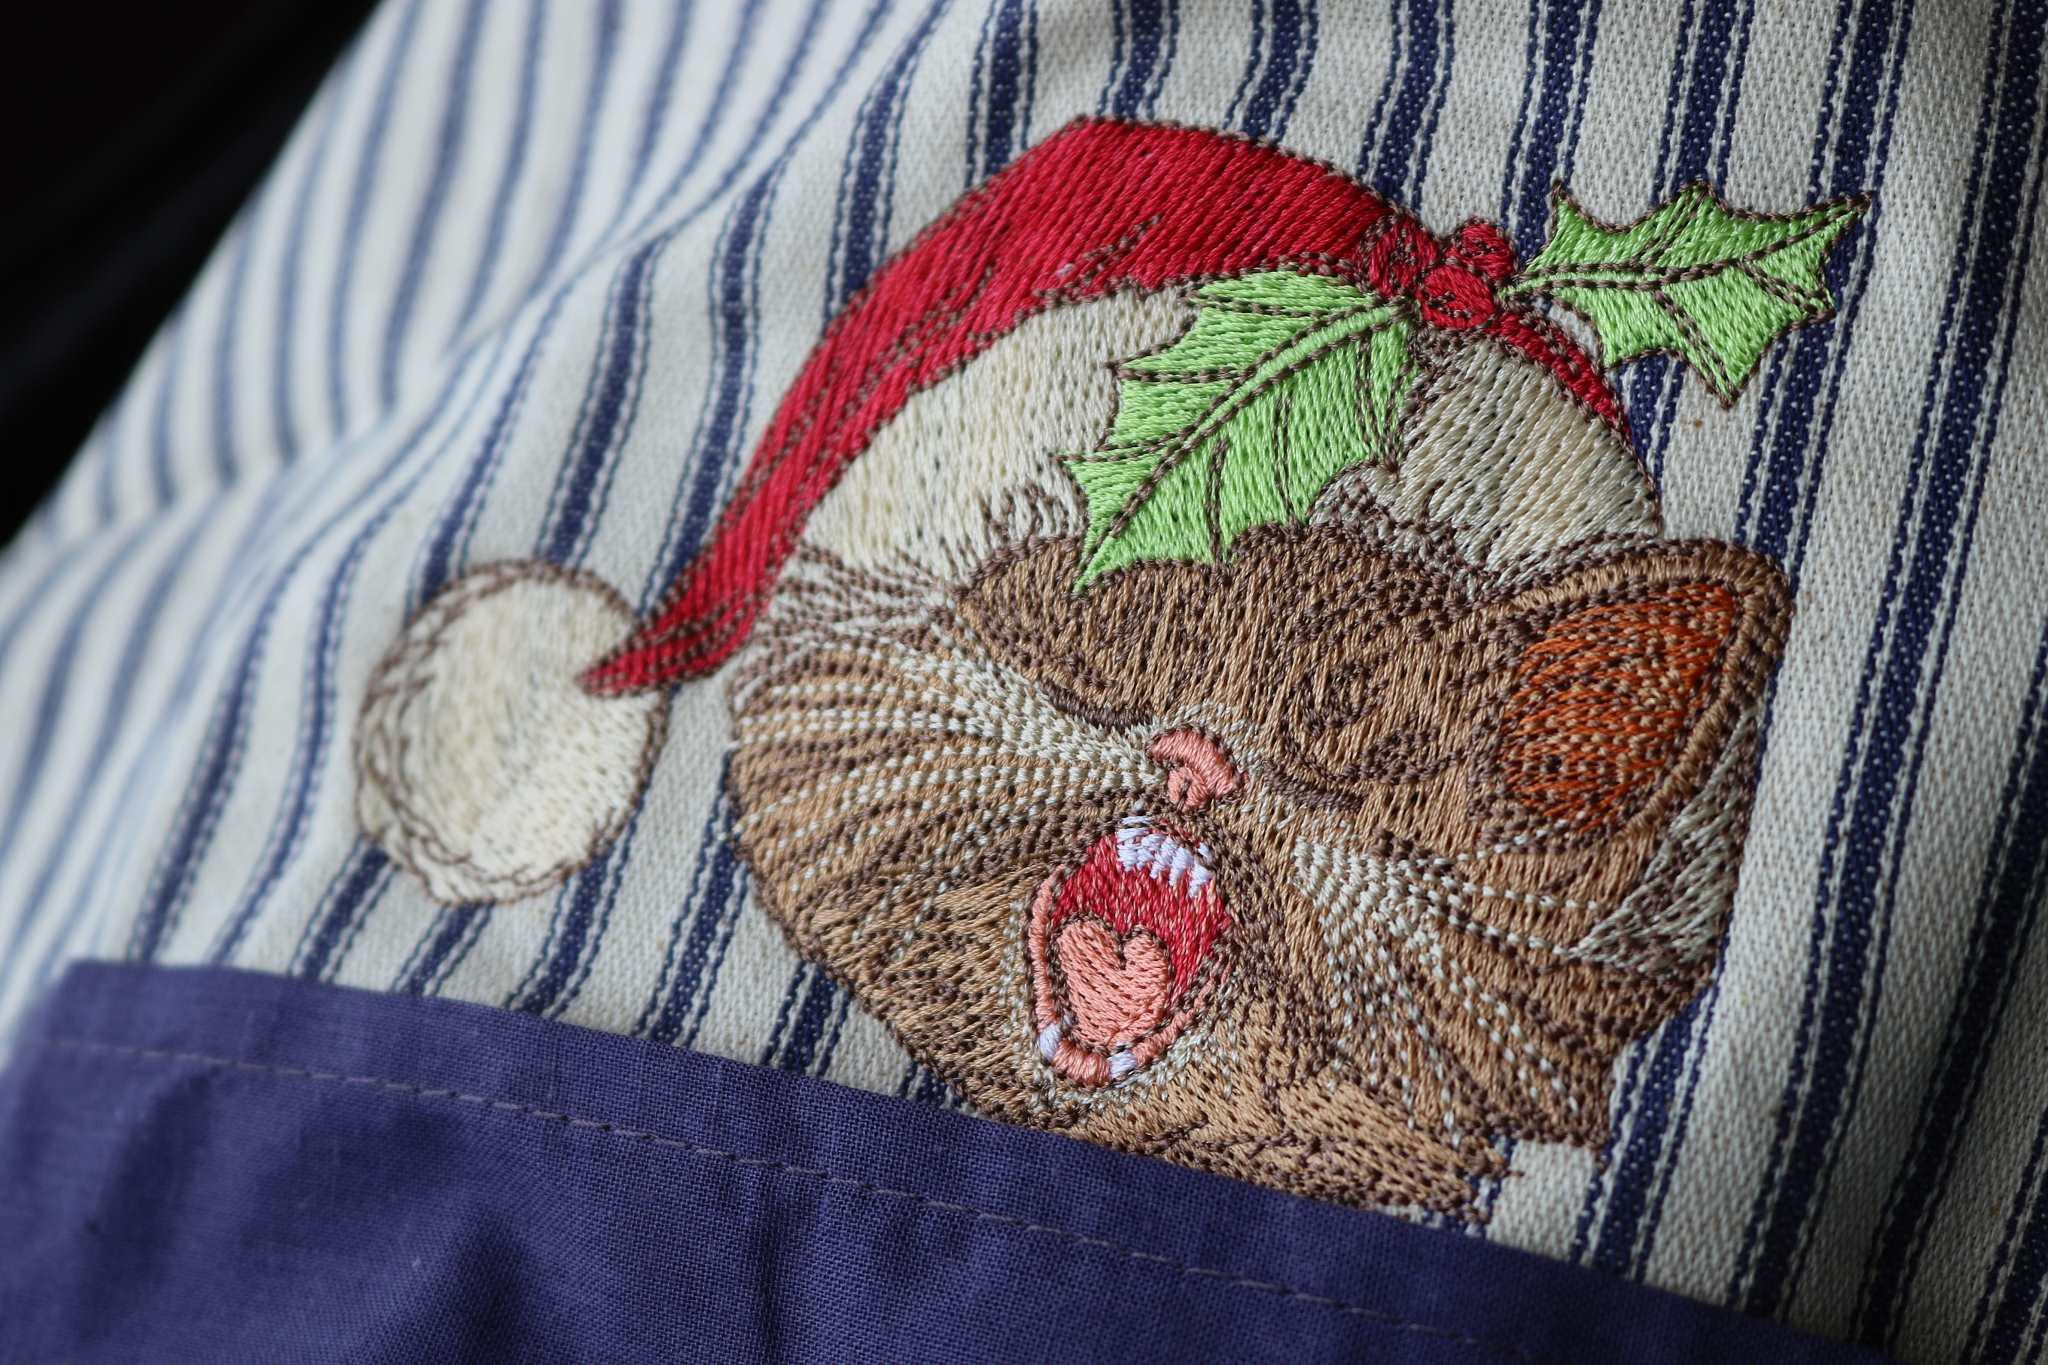 Singing cat embroidery design